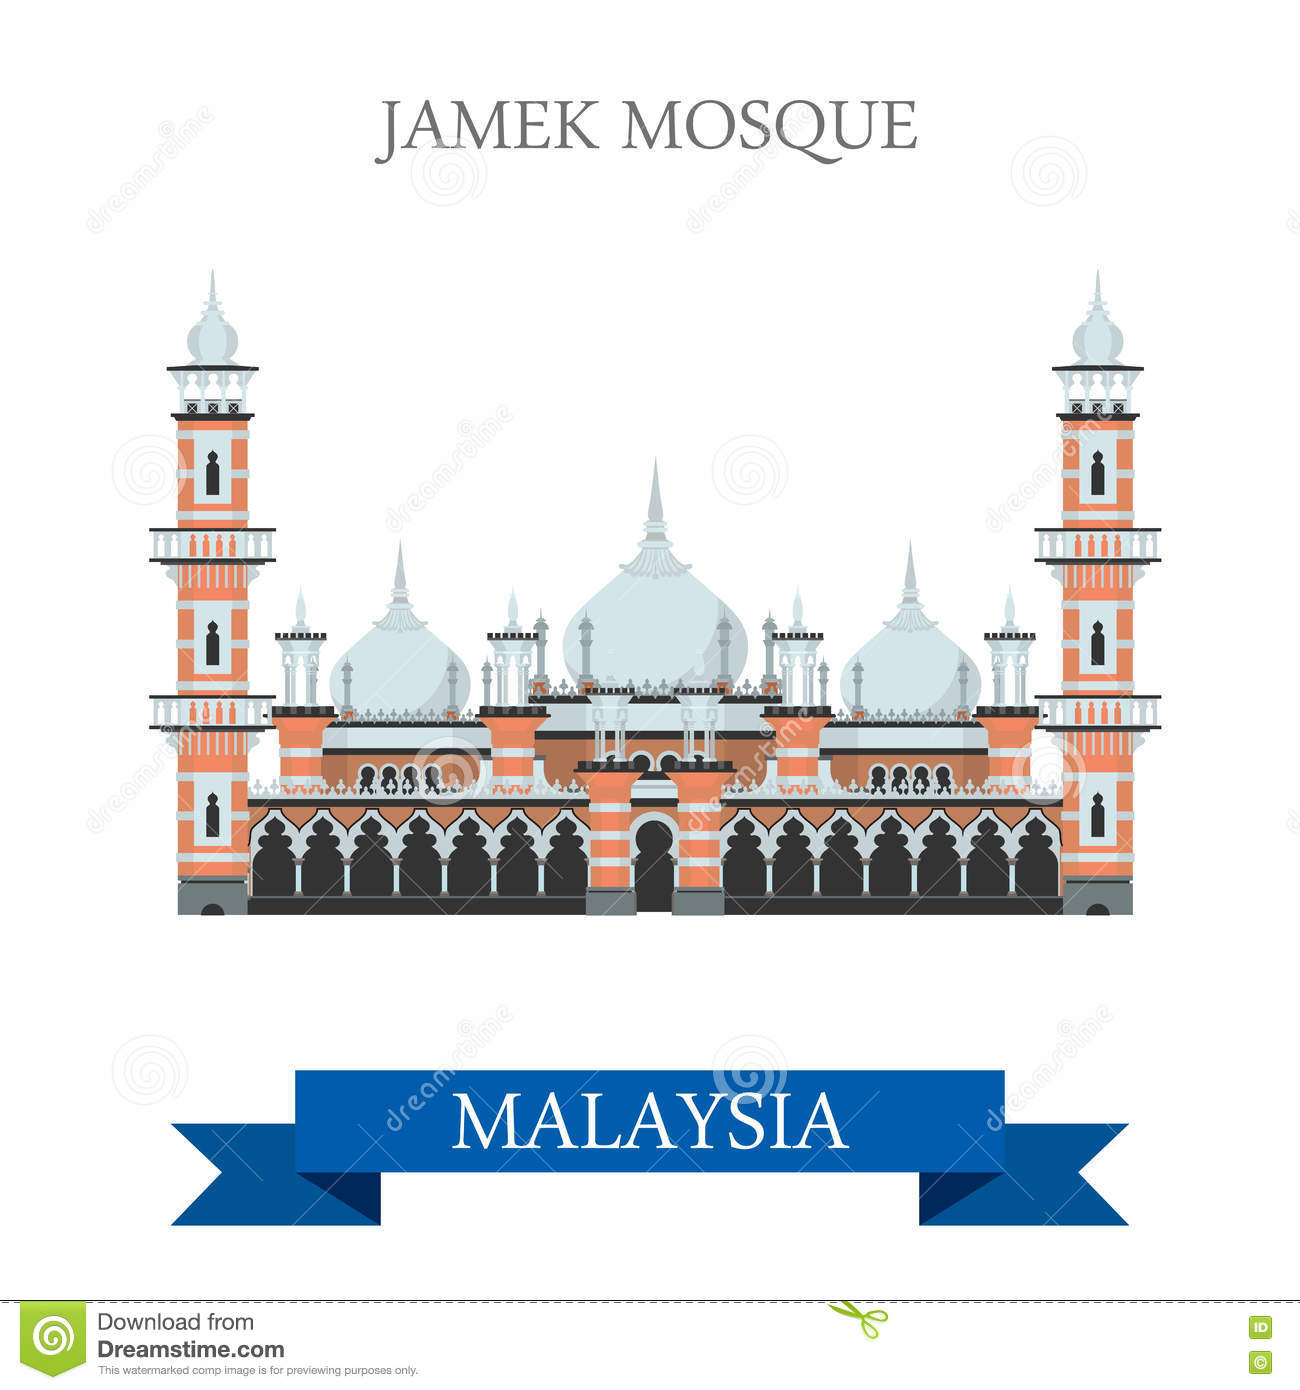 Malaysia Travel Attraction Label Vector Illustration